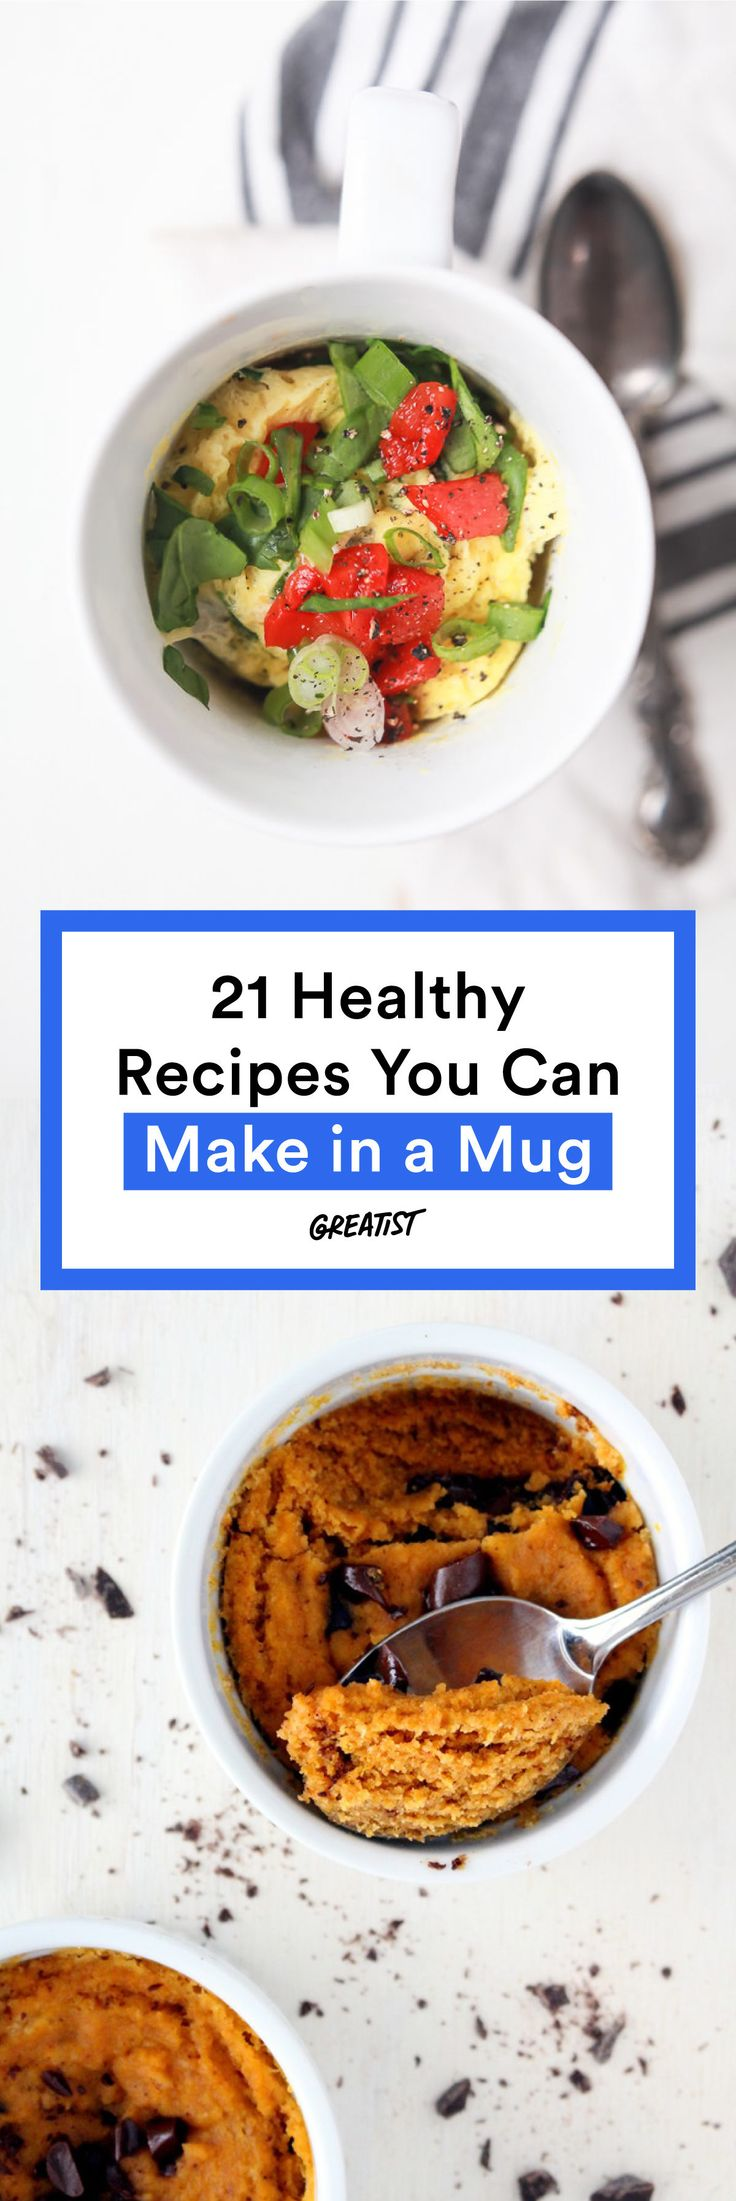 21 Healthy Meals (and Desserts) You Can Make in a Mug | Put that average mug brownie to shame.  #healthy #meals http://greatist.com/eat/healthy-mug-recipes